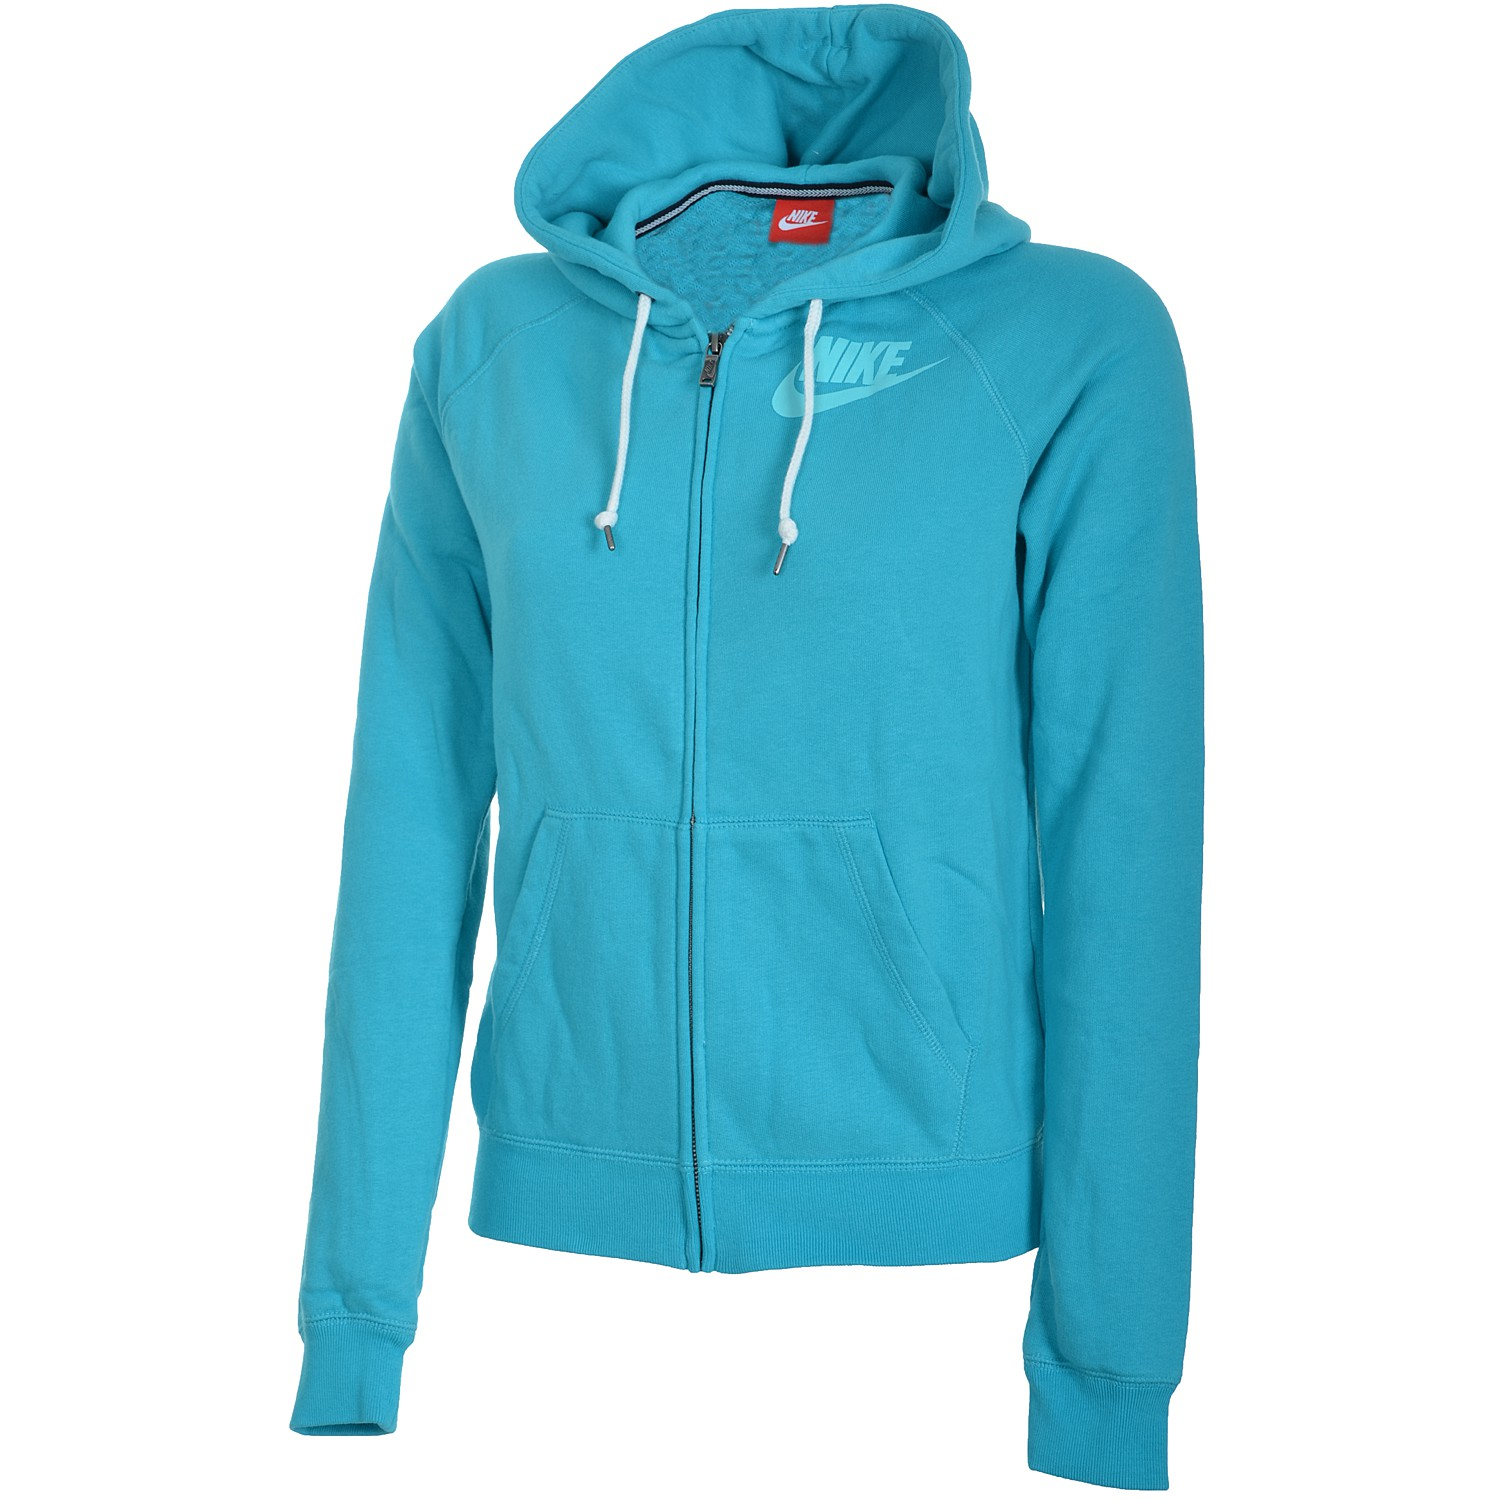 nike futura signal full zip damen hoodie sweatjacke gr n. Black Bedroom Furniture Sets. Home Design Ideas